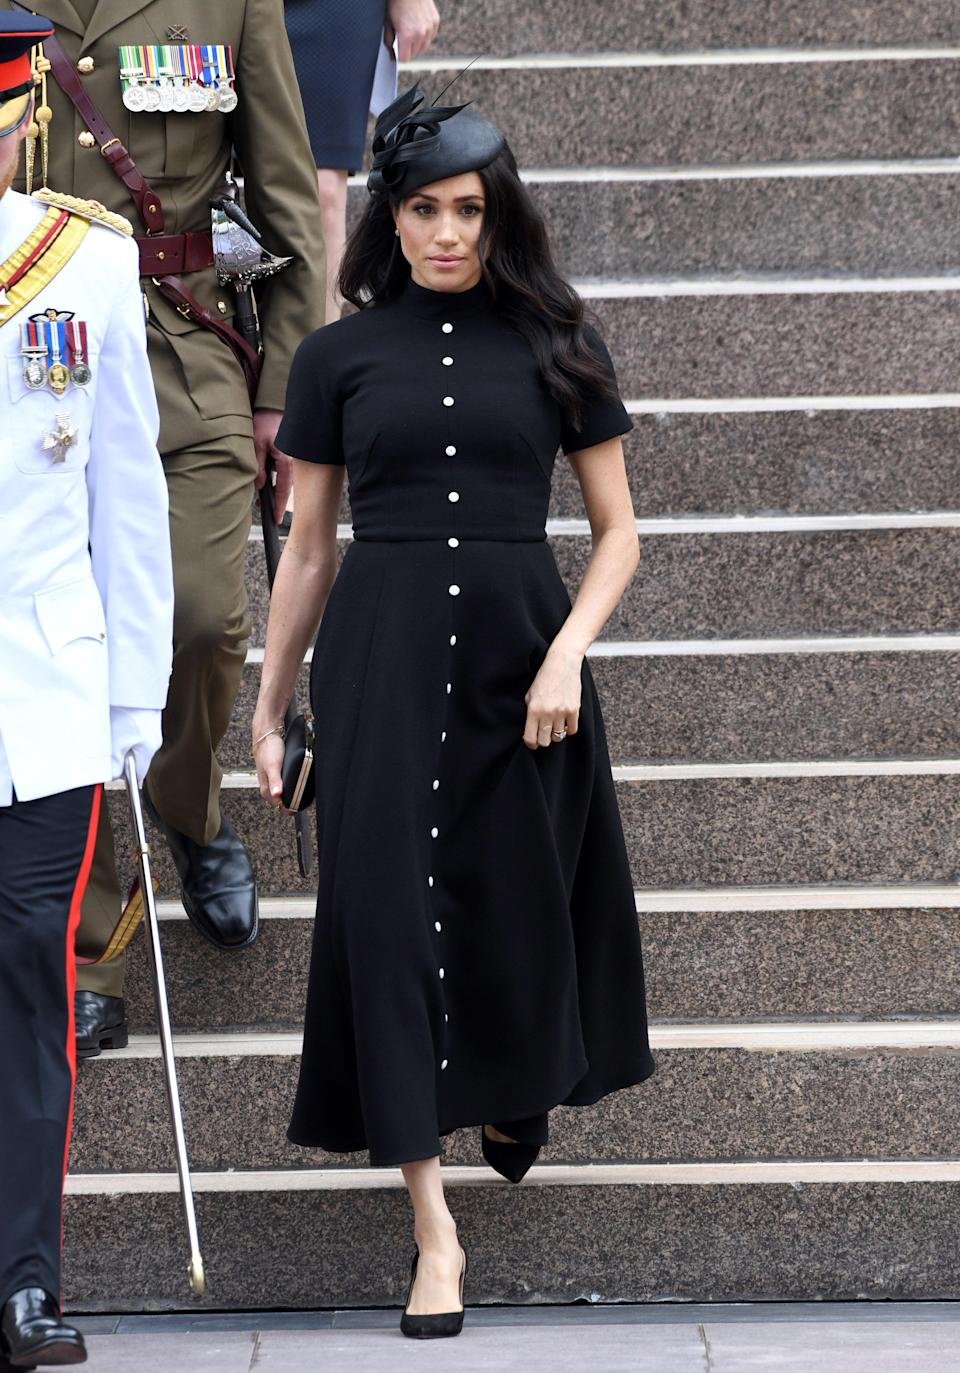 <p>Meghan wore a custom made black Emilia Wickstead dress with a Philip Treacy hat, a satin Givenchy clutch and Tabitha Simmons slingback pumps for the official opening of the extension of the ANZAC Memorial in Hyde Park in Sydney, Australia. <em>[Photo: Getty]</em> </p>